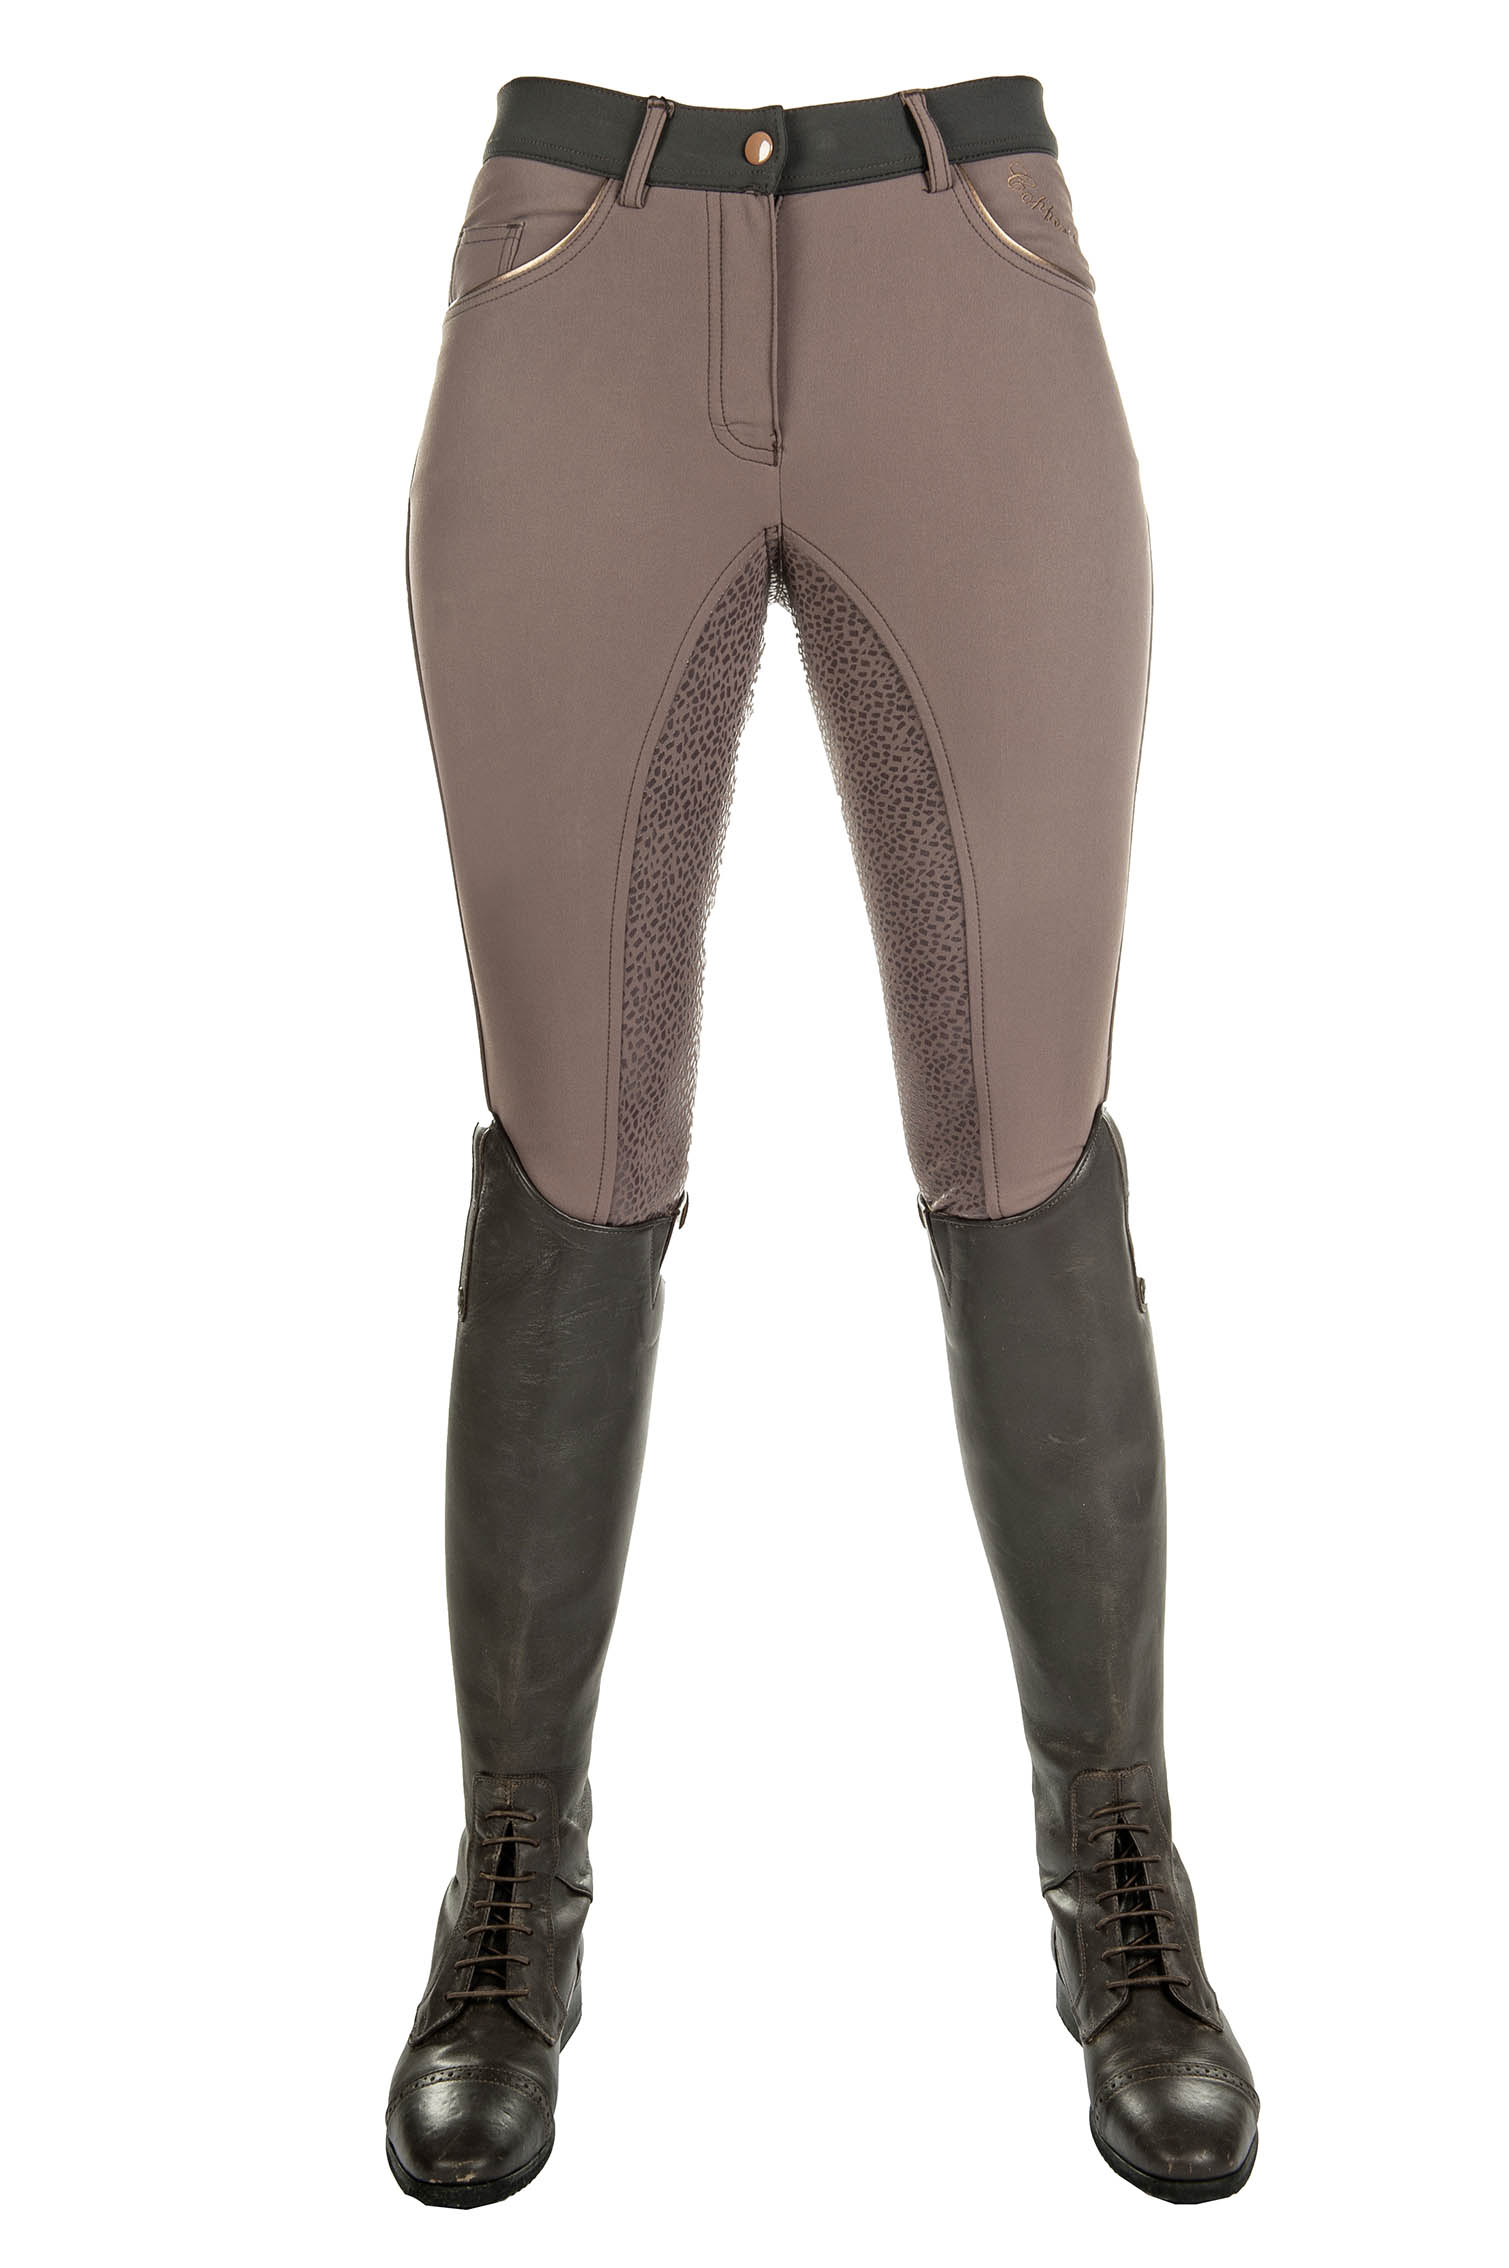 Cavallino Marino Riding Breeches Copper Kiss Silicone Full Seat